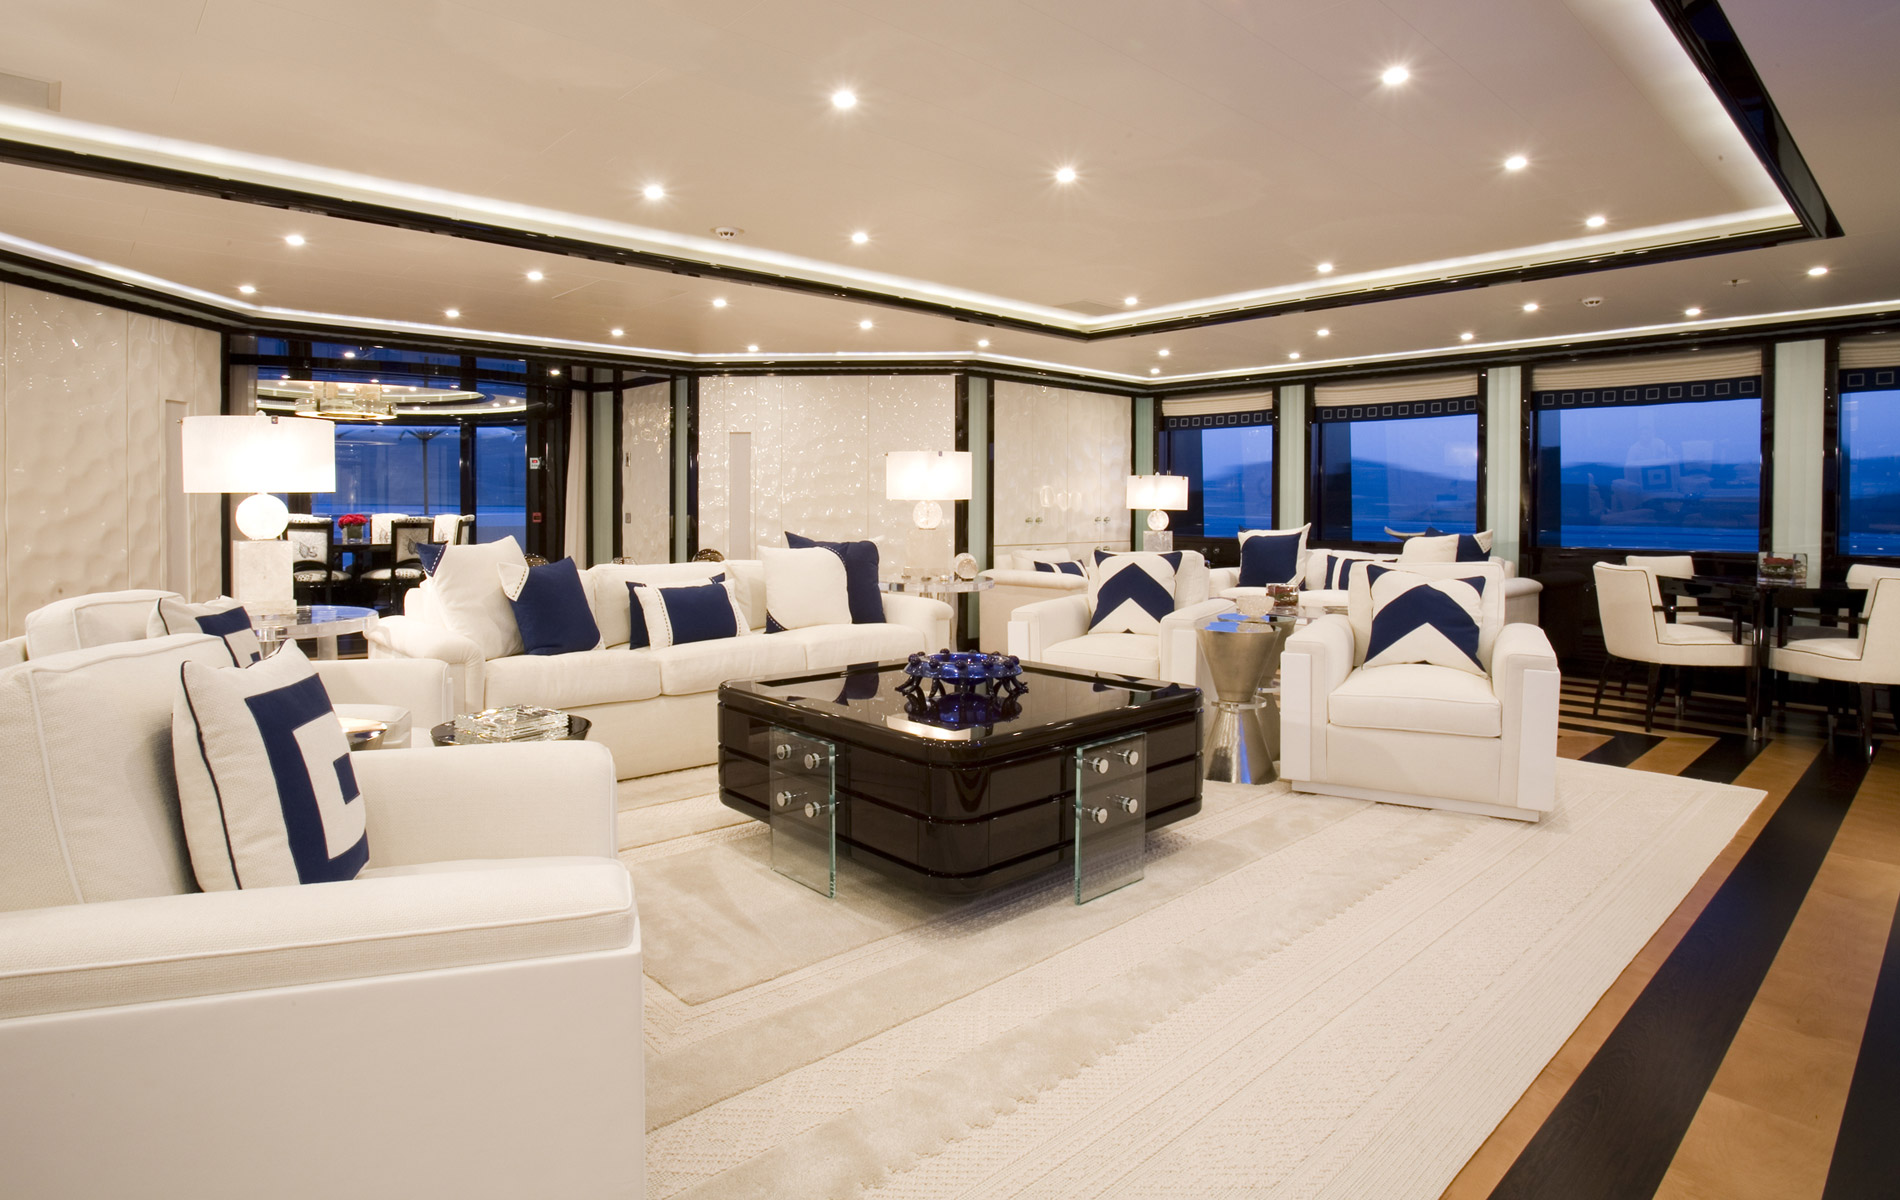 Get Inside This Luxury Yachts with Gorgeous Interiors Luxury Yachts Get Inside This Luxury Yachts with Gorgeous Interiors Get Inside This Luxury Yachts with Gorgeous Interiors8